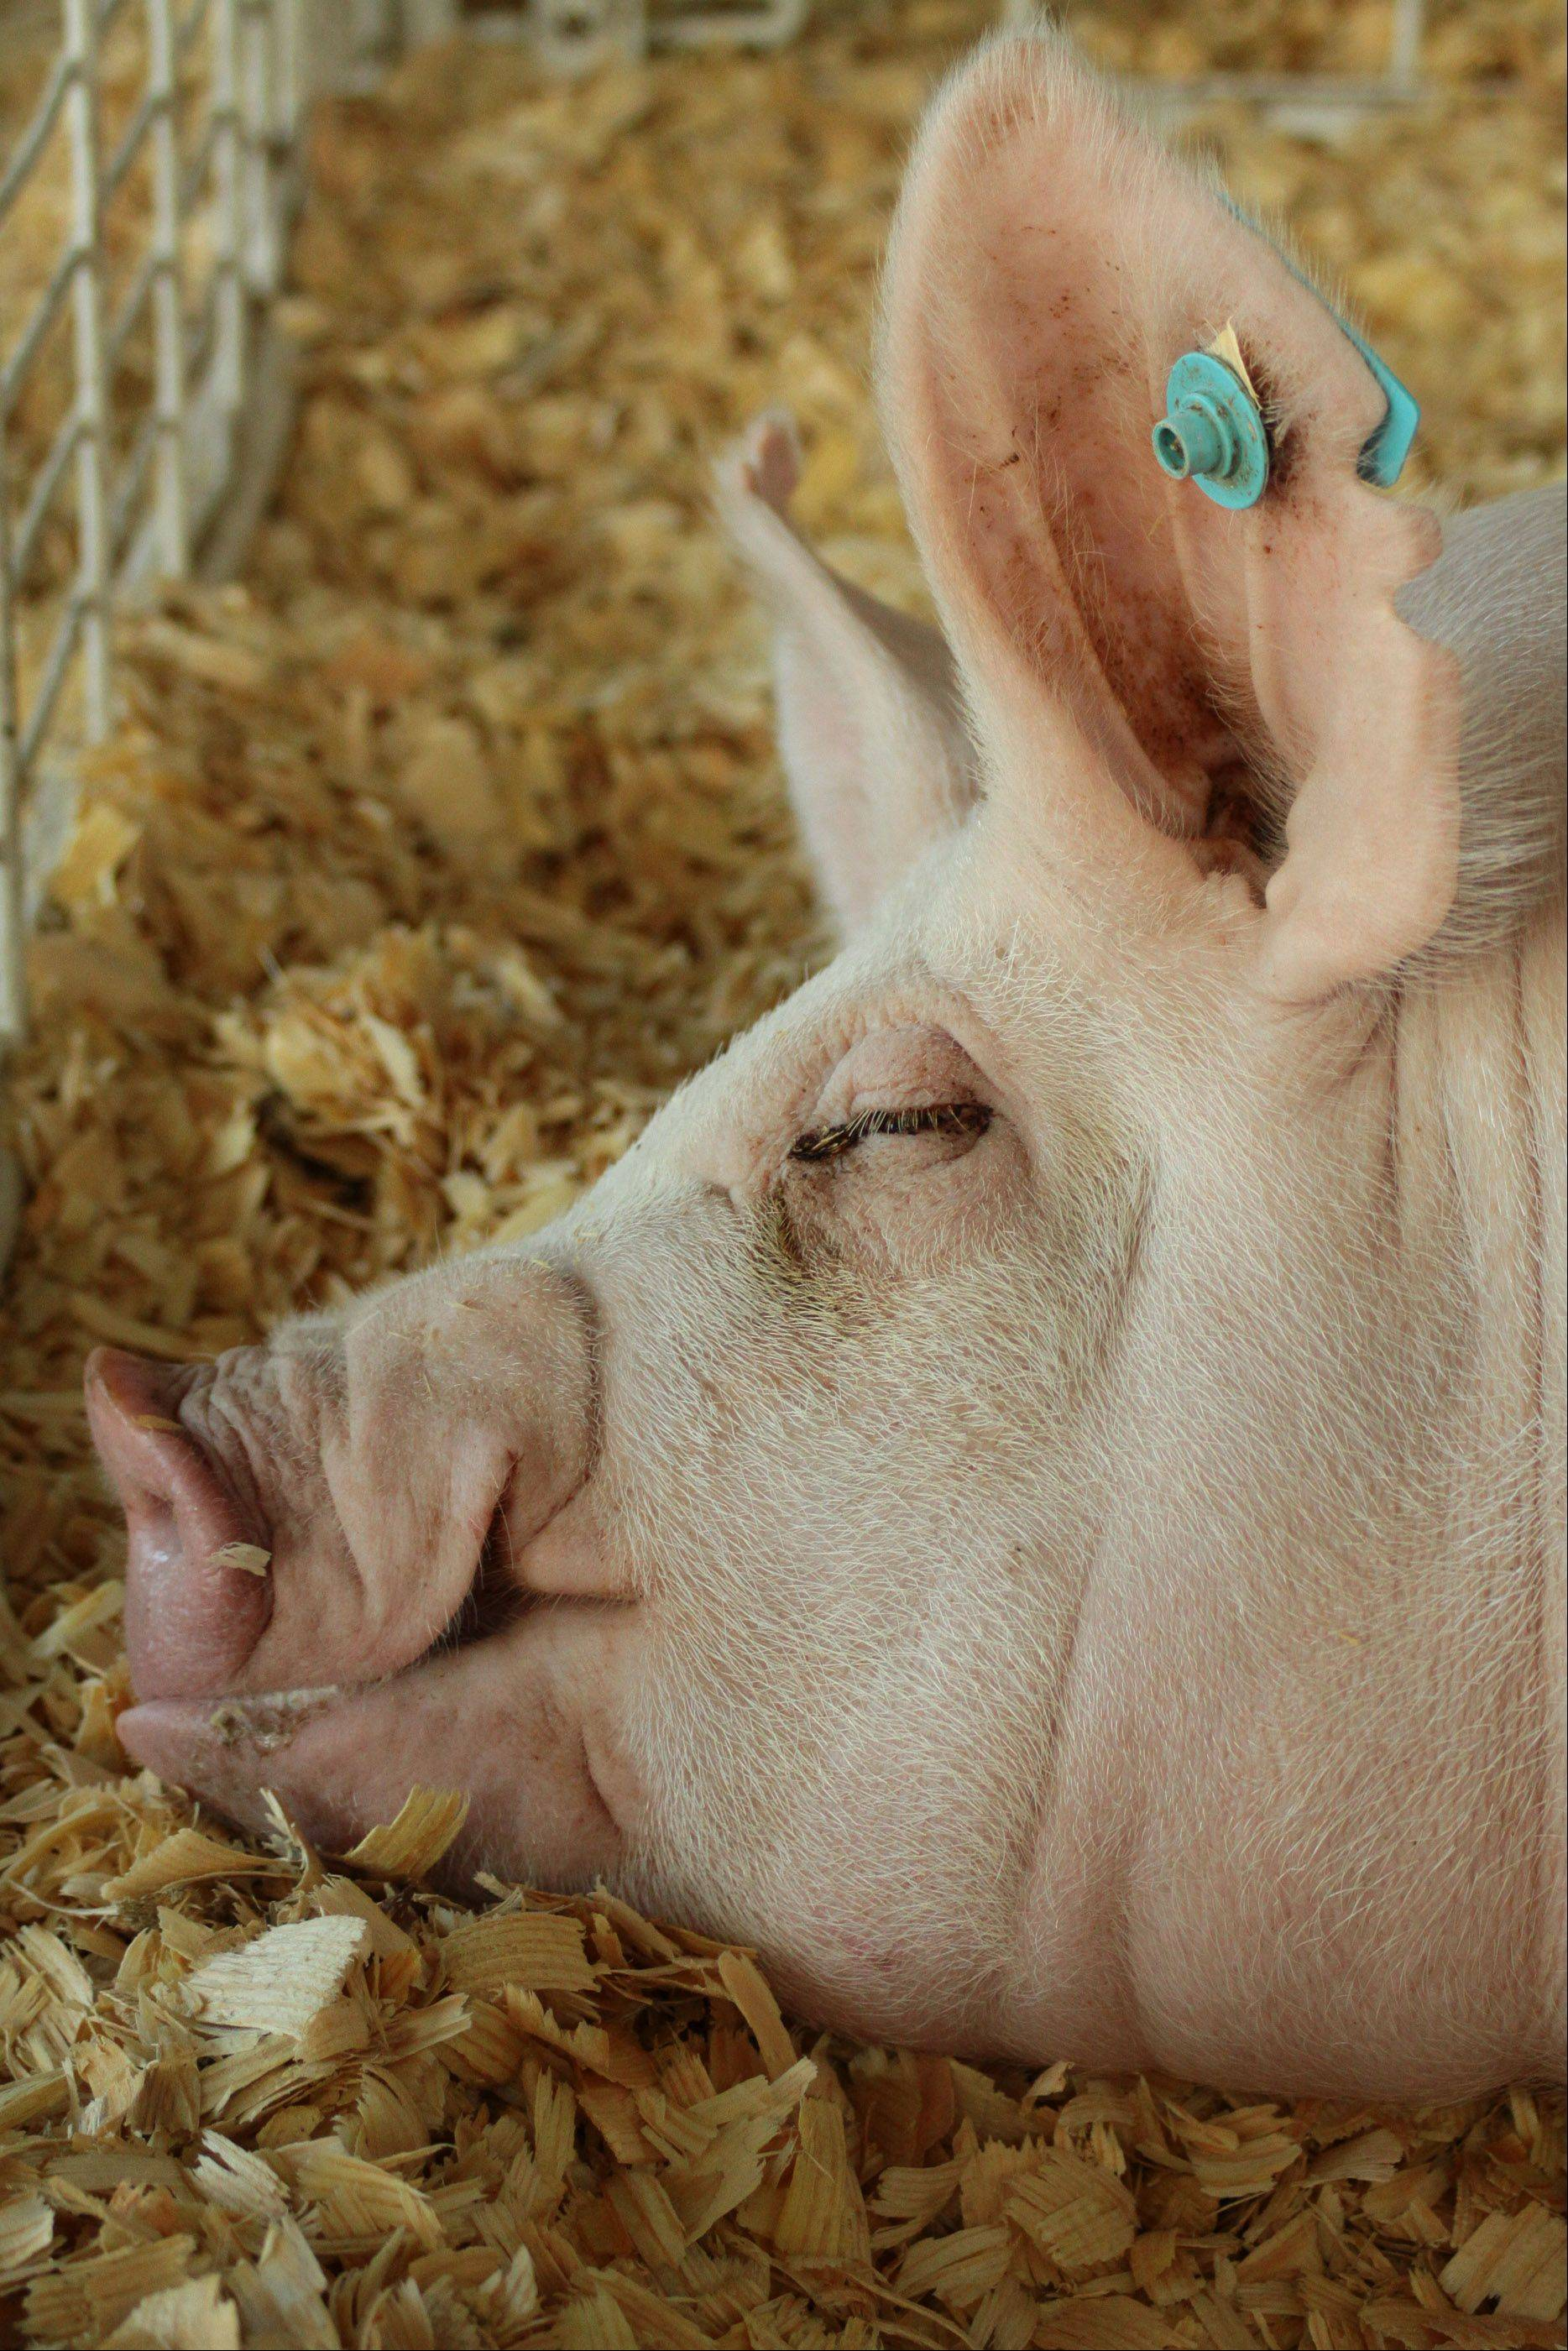 Dick Davis of Lombard was the first-place winner in the Photography Shoot-Out contest at the DuPage County Fair in Wheaton for this picture of a tired pig. �I think it was just a matter of being in the right place at the right time,� he said.